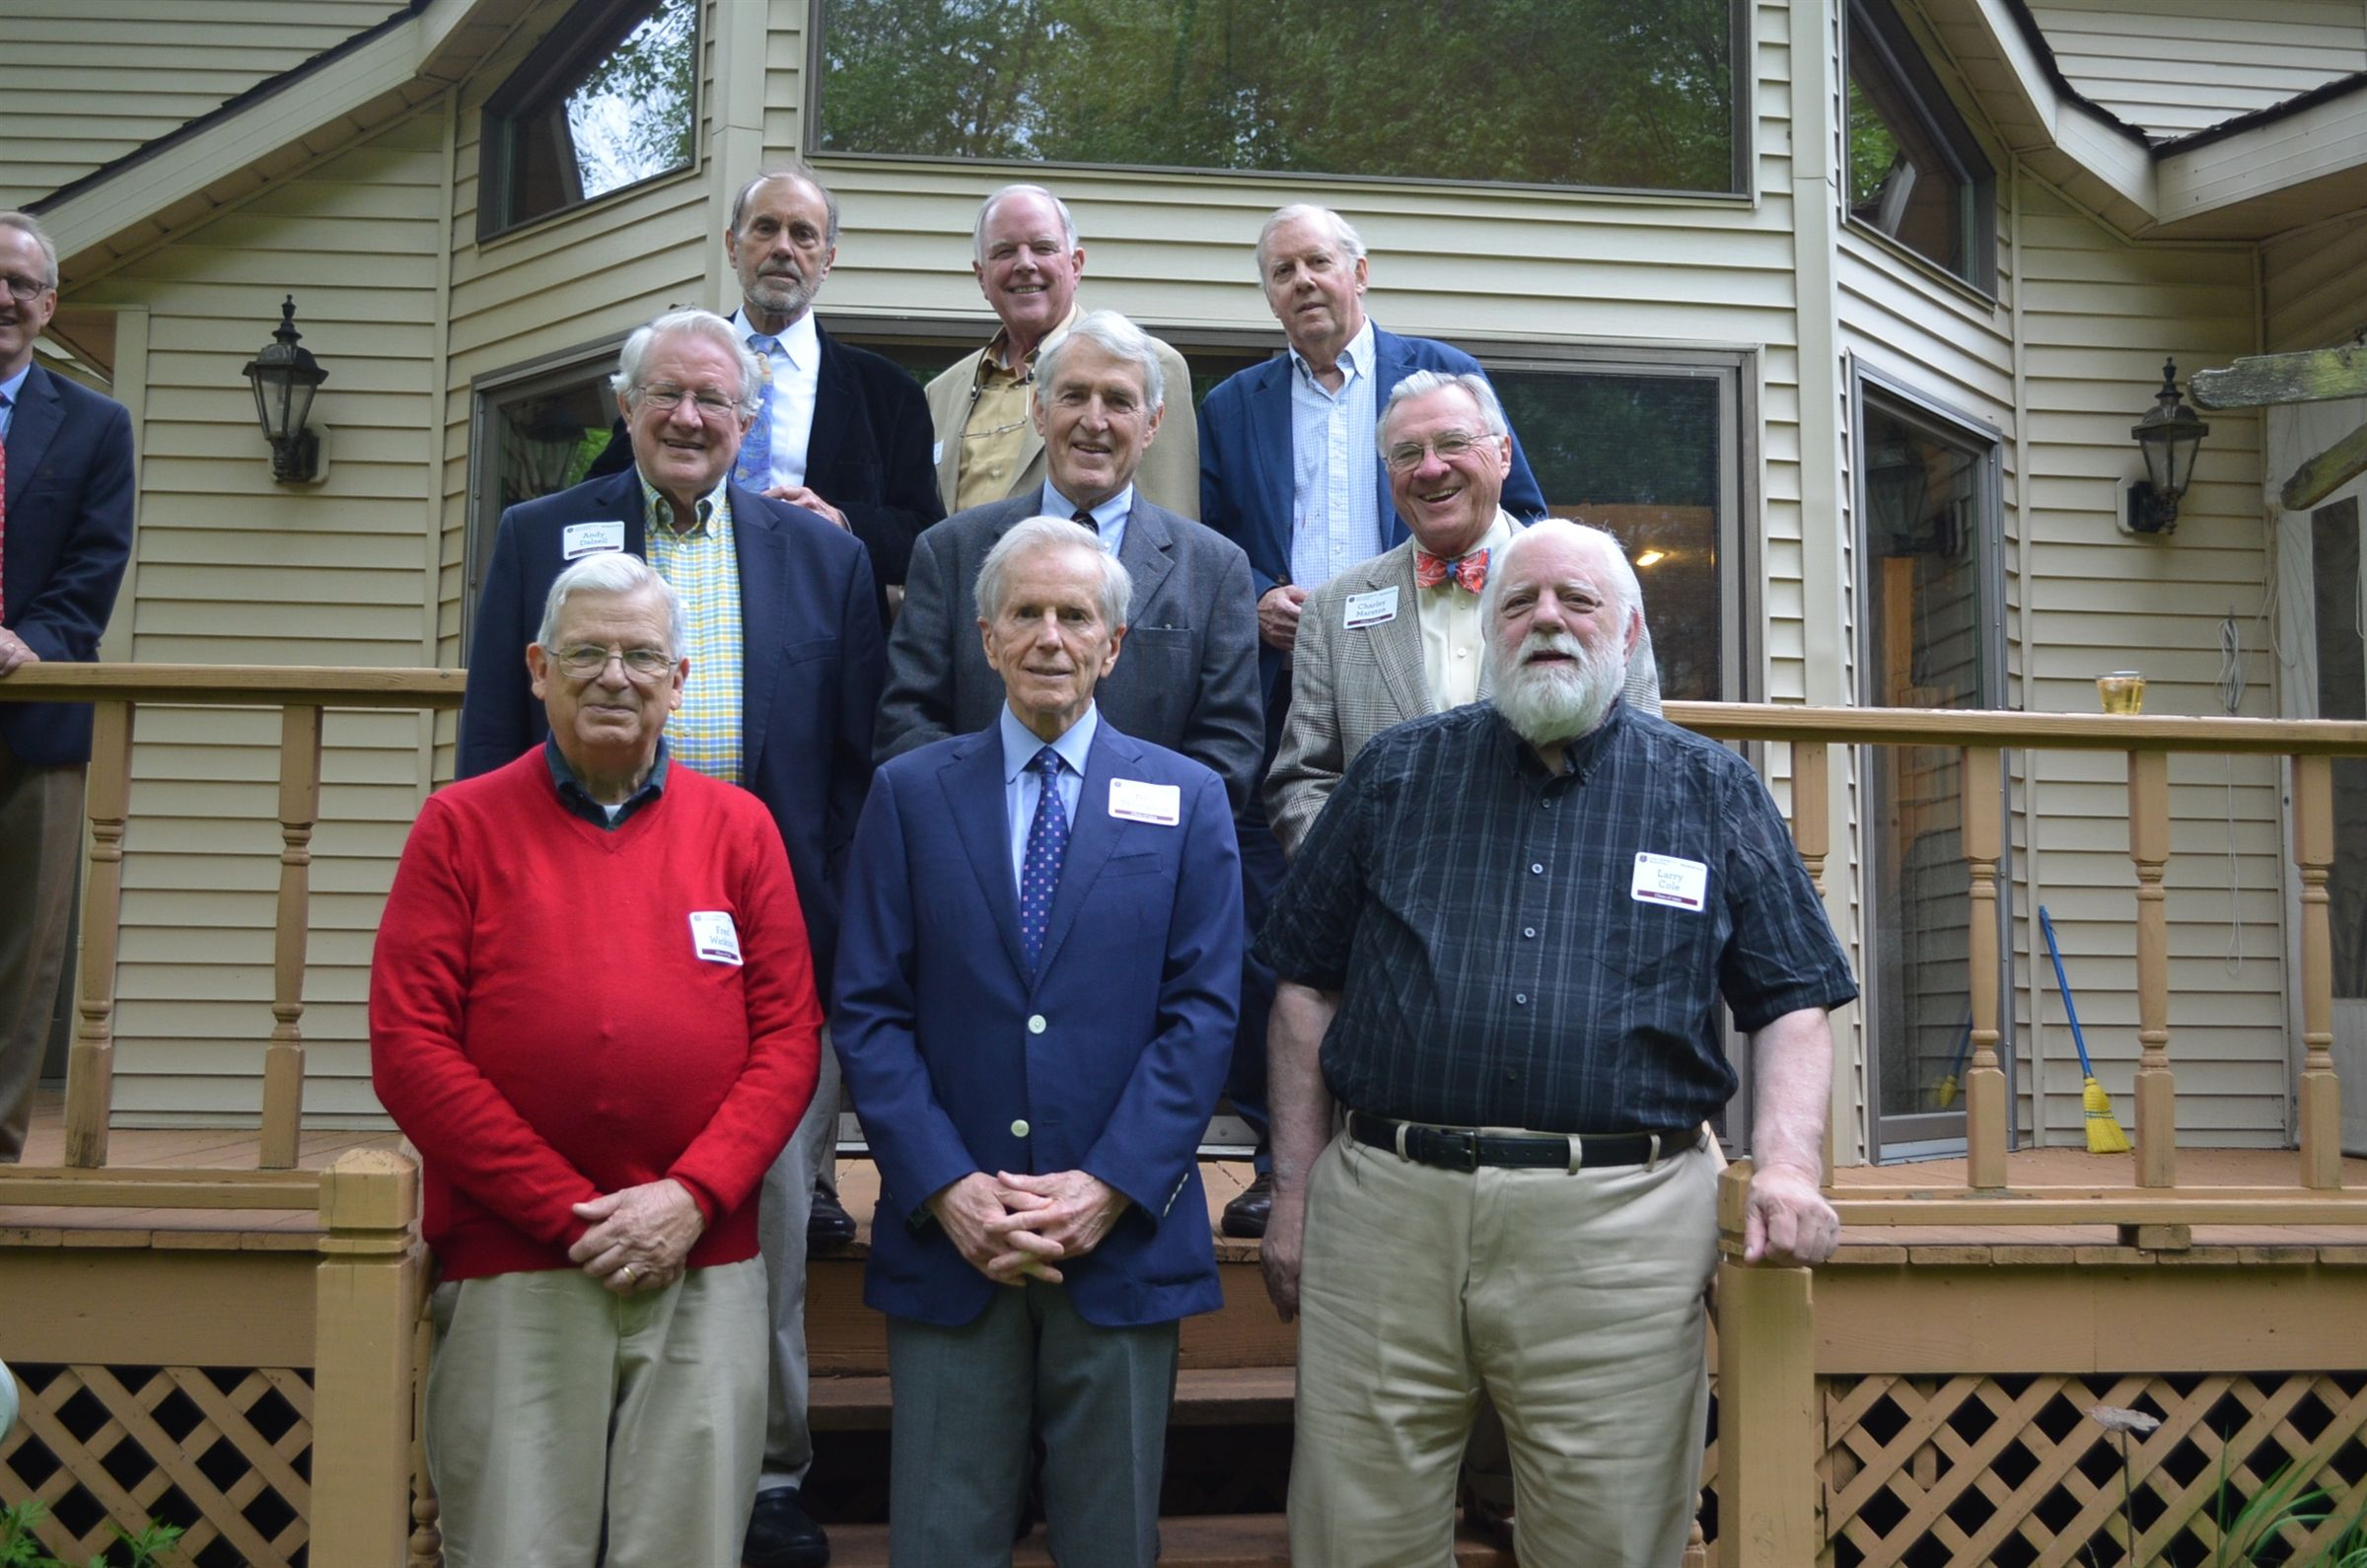 Fred Watkins was happy to host his classmates from 1959 for their 60th reunion.